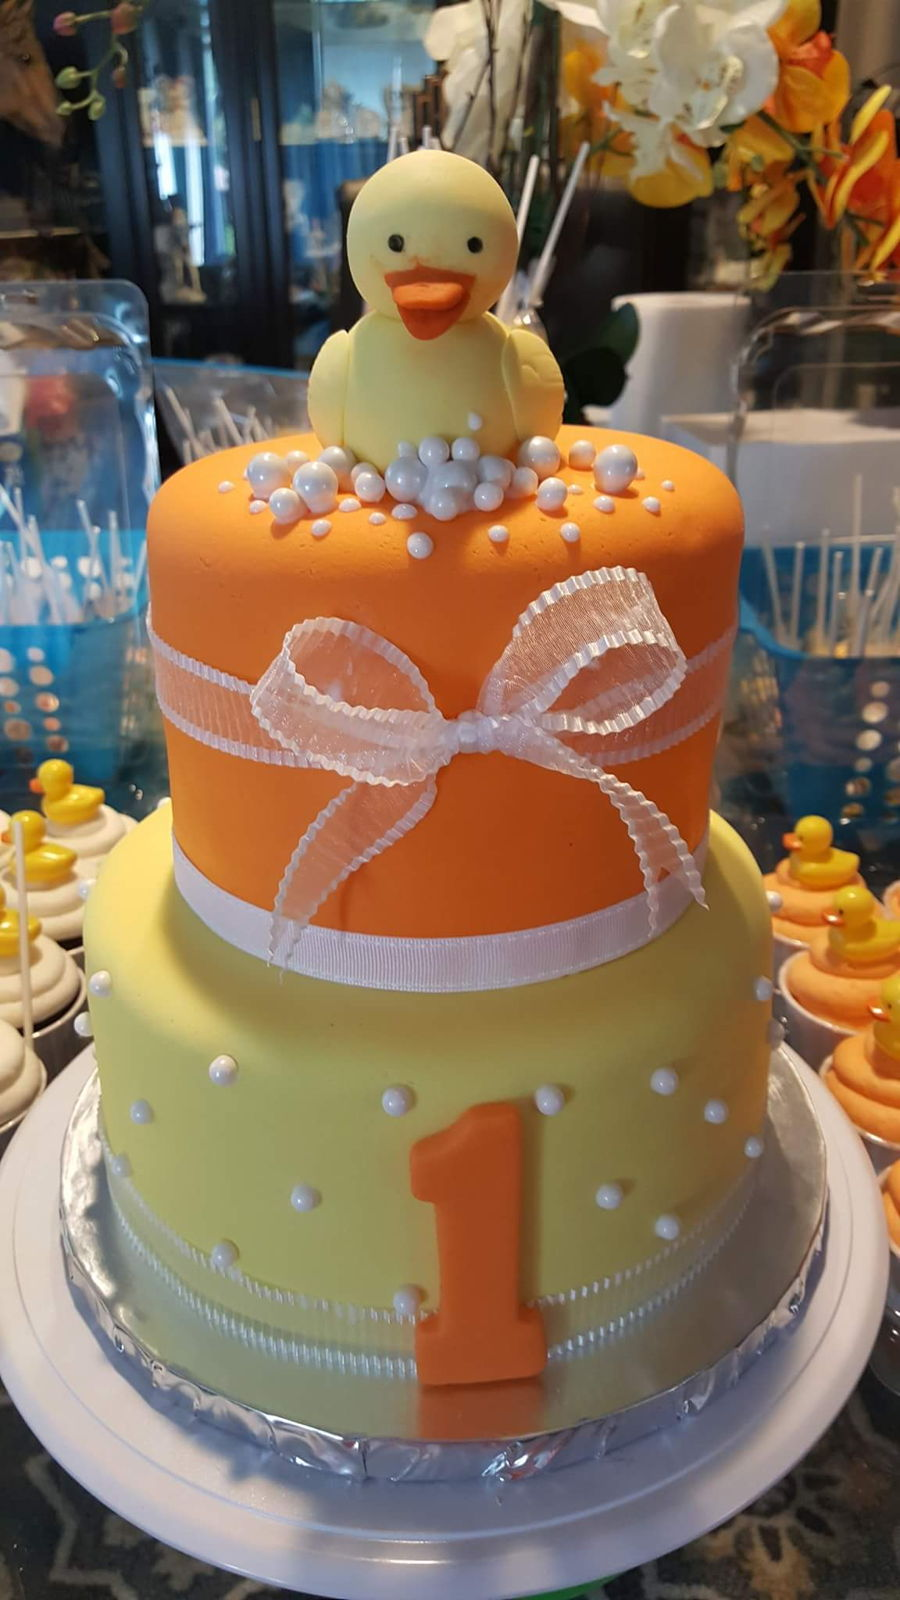 Marvelous Rubber Duckie 1St Birthday Cake Cakecentral Com Funny Birthday Cards Online Inifofree Goldxyz